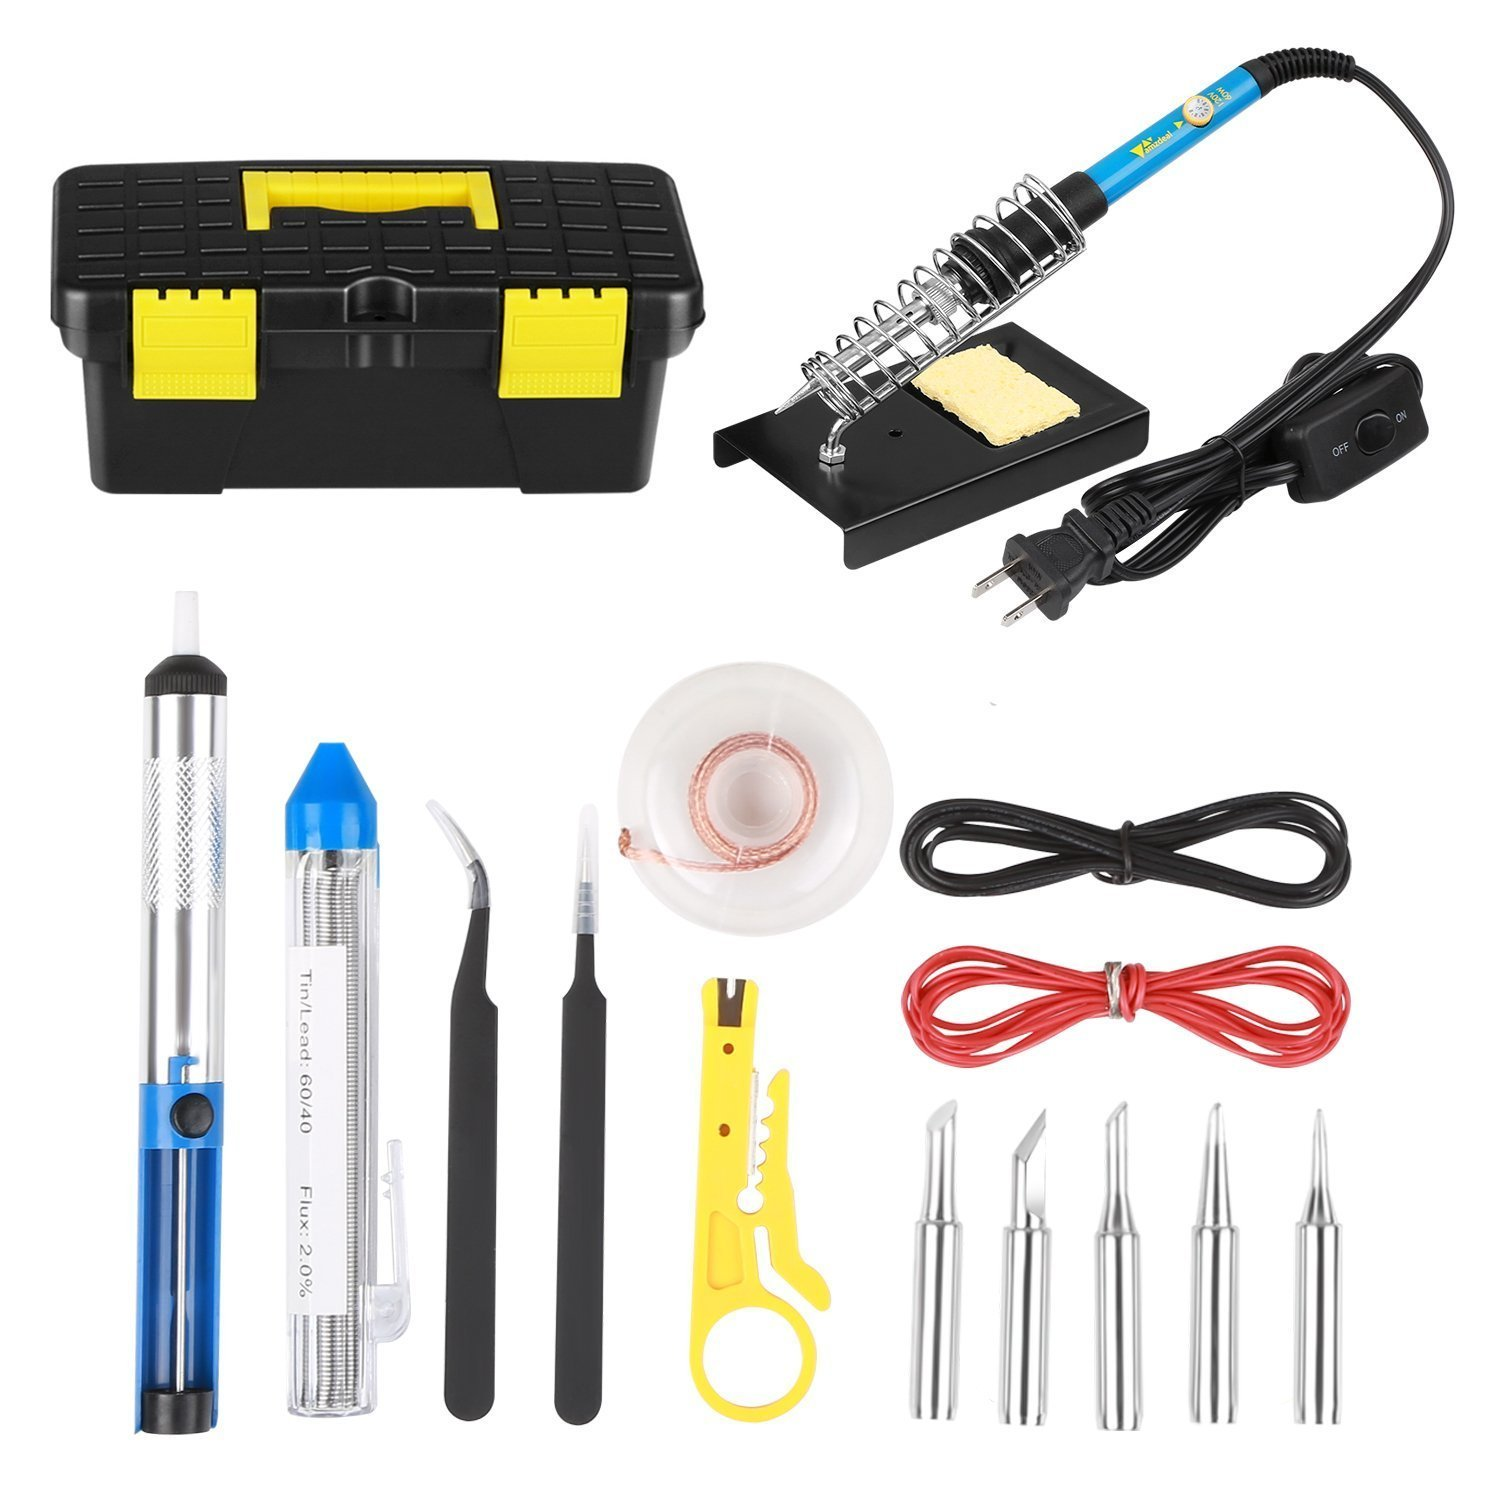 Amzdeal Soldering Iron Kit 60W 15 in 1 Soldering Tools Adjustable Temperature Welding Tool with 5 Changeable Soldering Tips, Soldering Iron Stand, Solder Sucker for DIY Projectsand Repairing